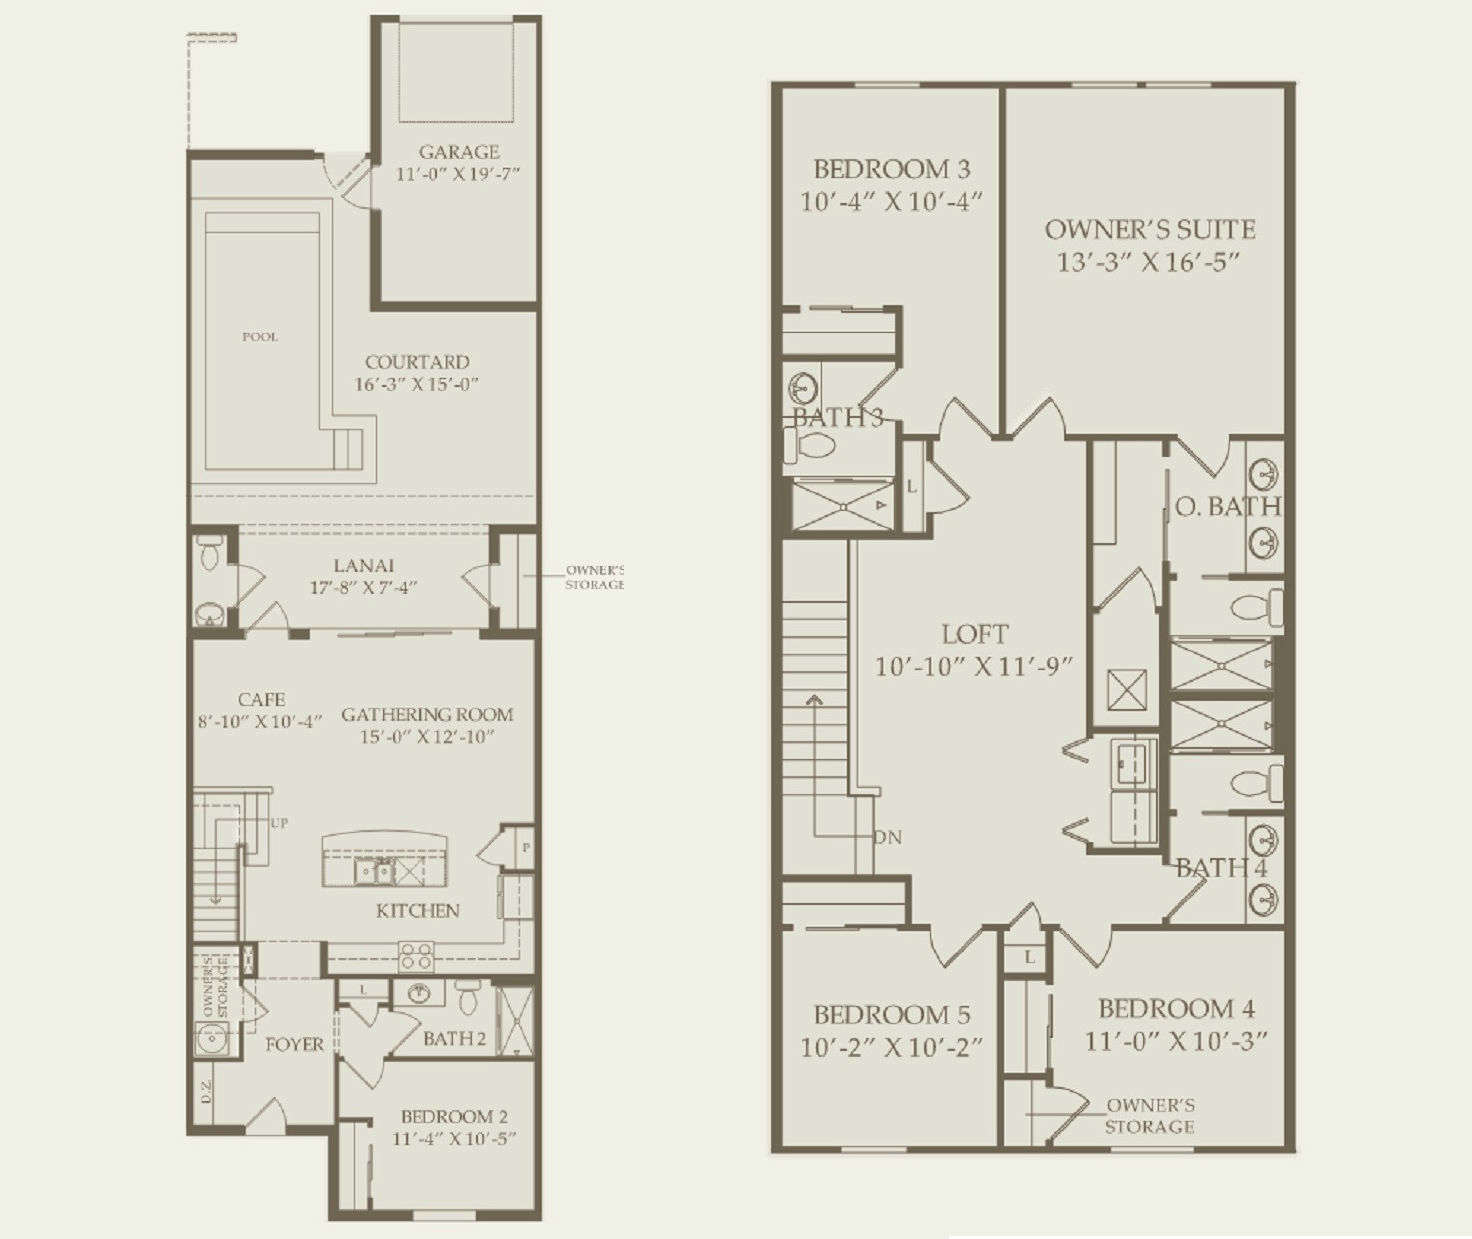 100 pulte home floor plans skyview new home plan for Pulte home designs